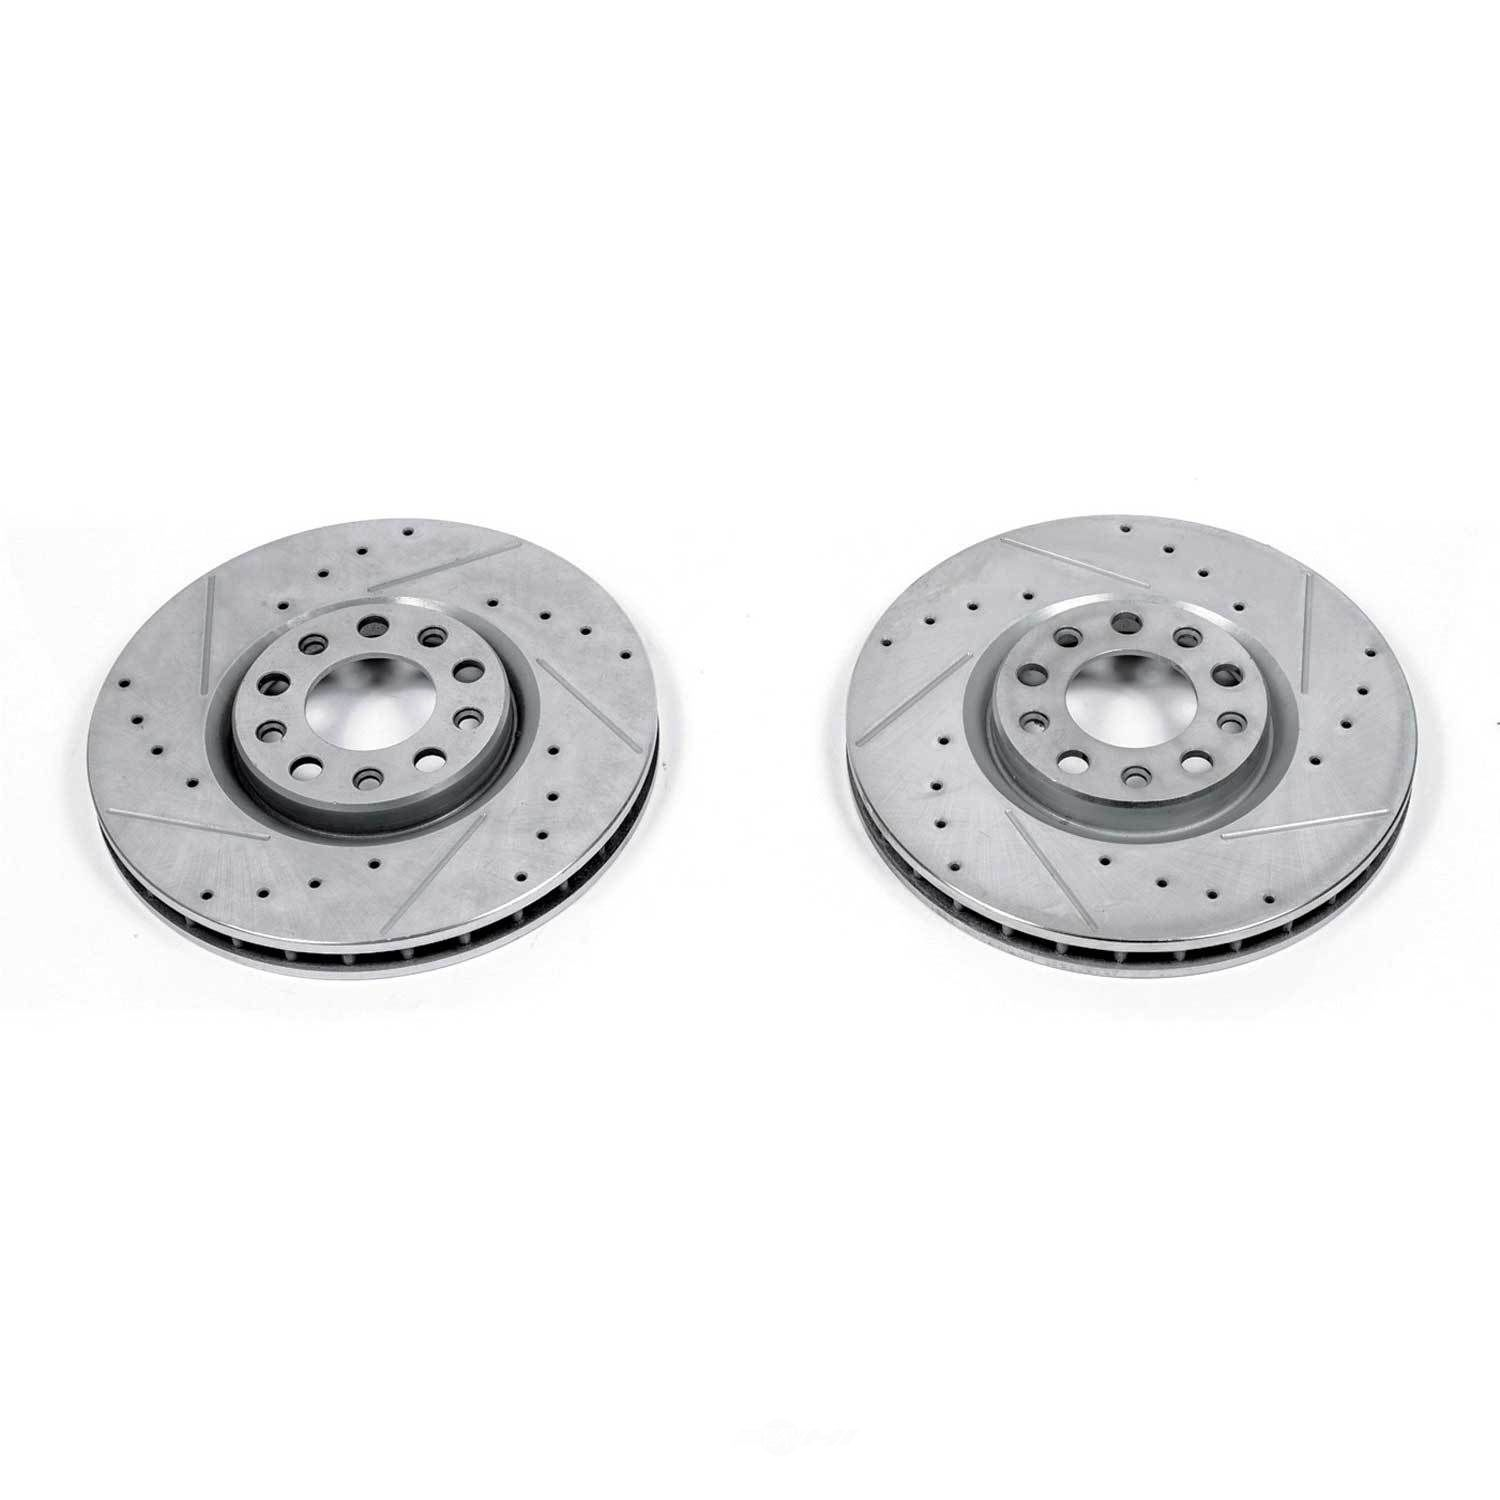 POWER STOP - Extreme Performance Drilled & Slotted Brake Rotor (Front) - PWS AR83086XPR